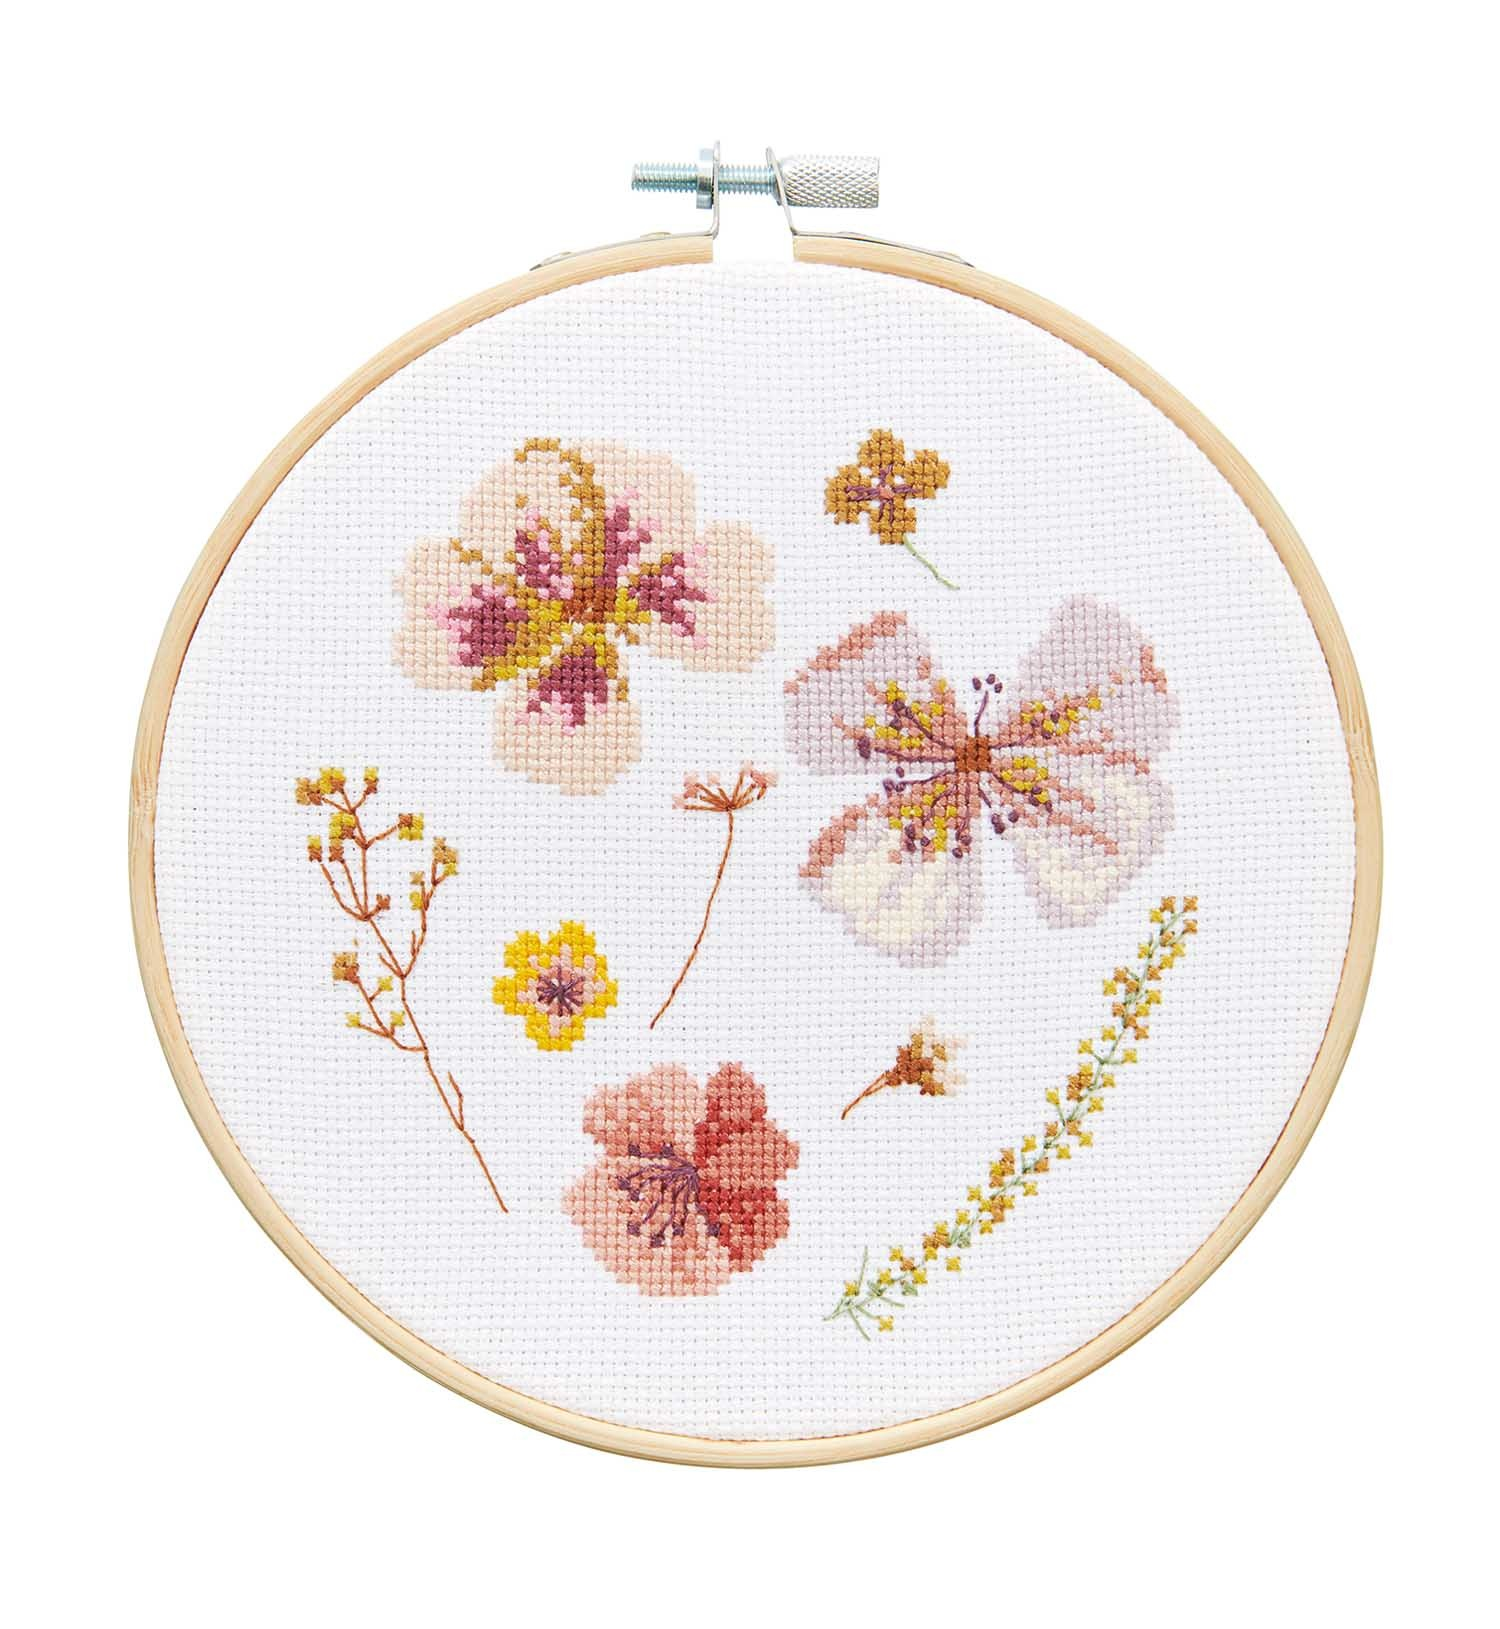 Rico NAY Embroidery kit transformation dried blossoms, picture Ø 15 cm, counted cross stitch